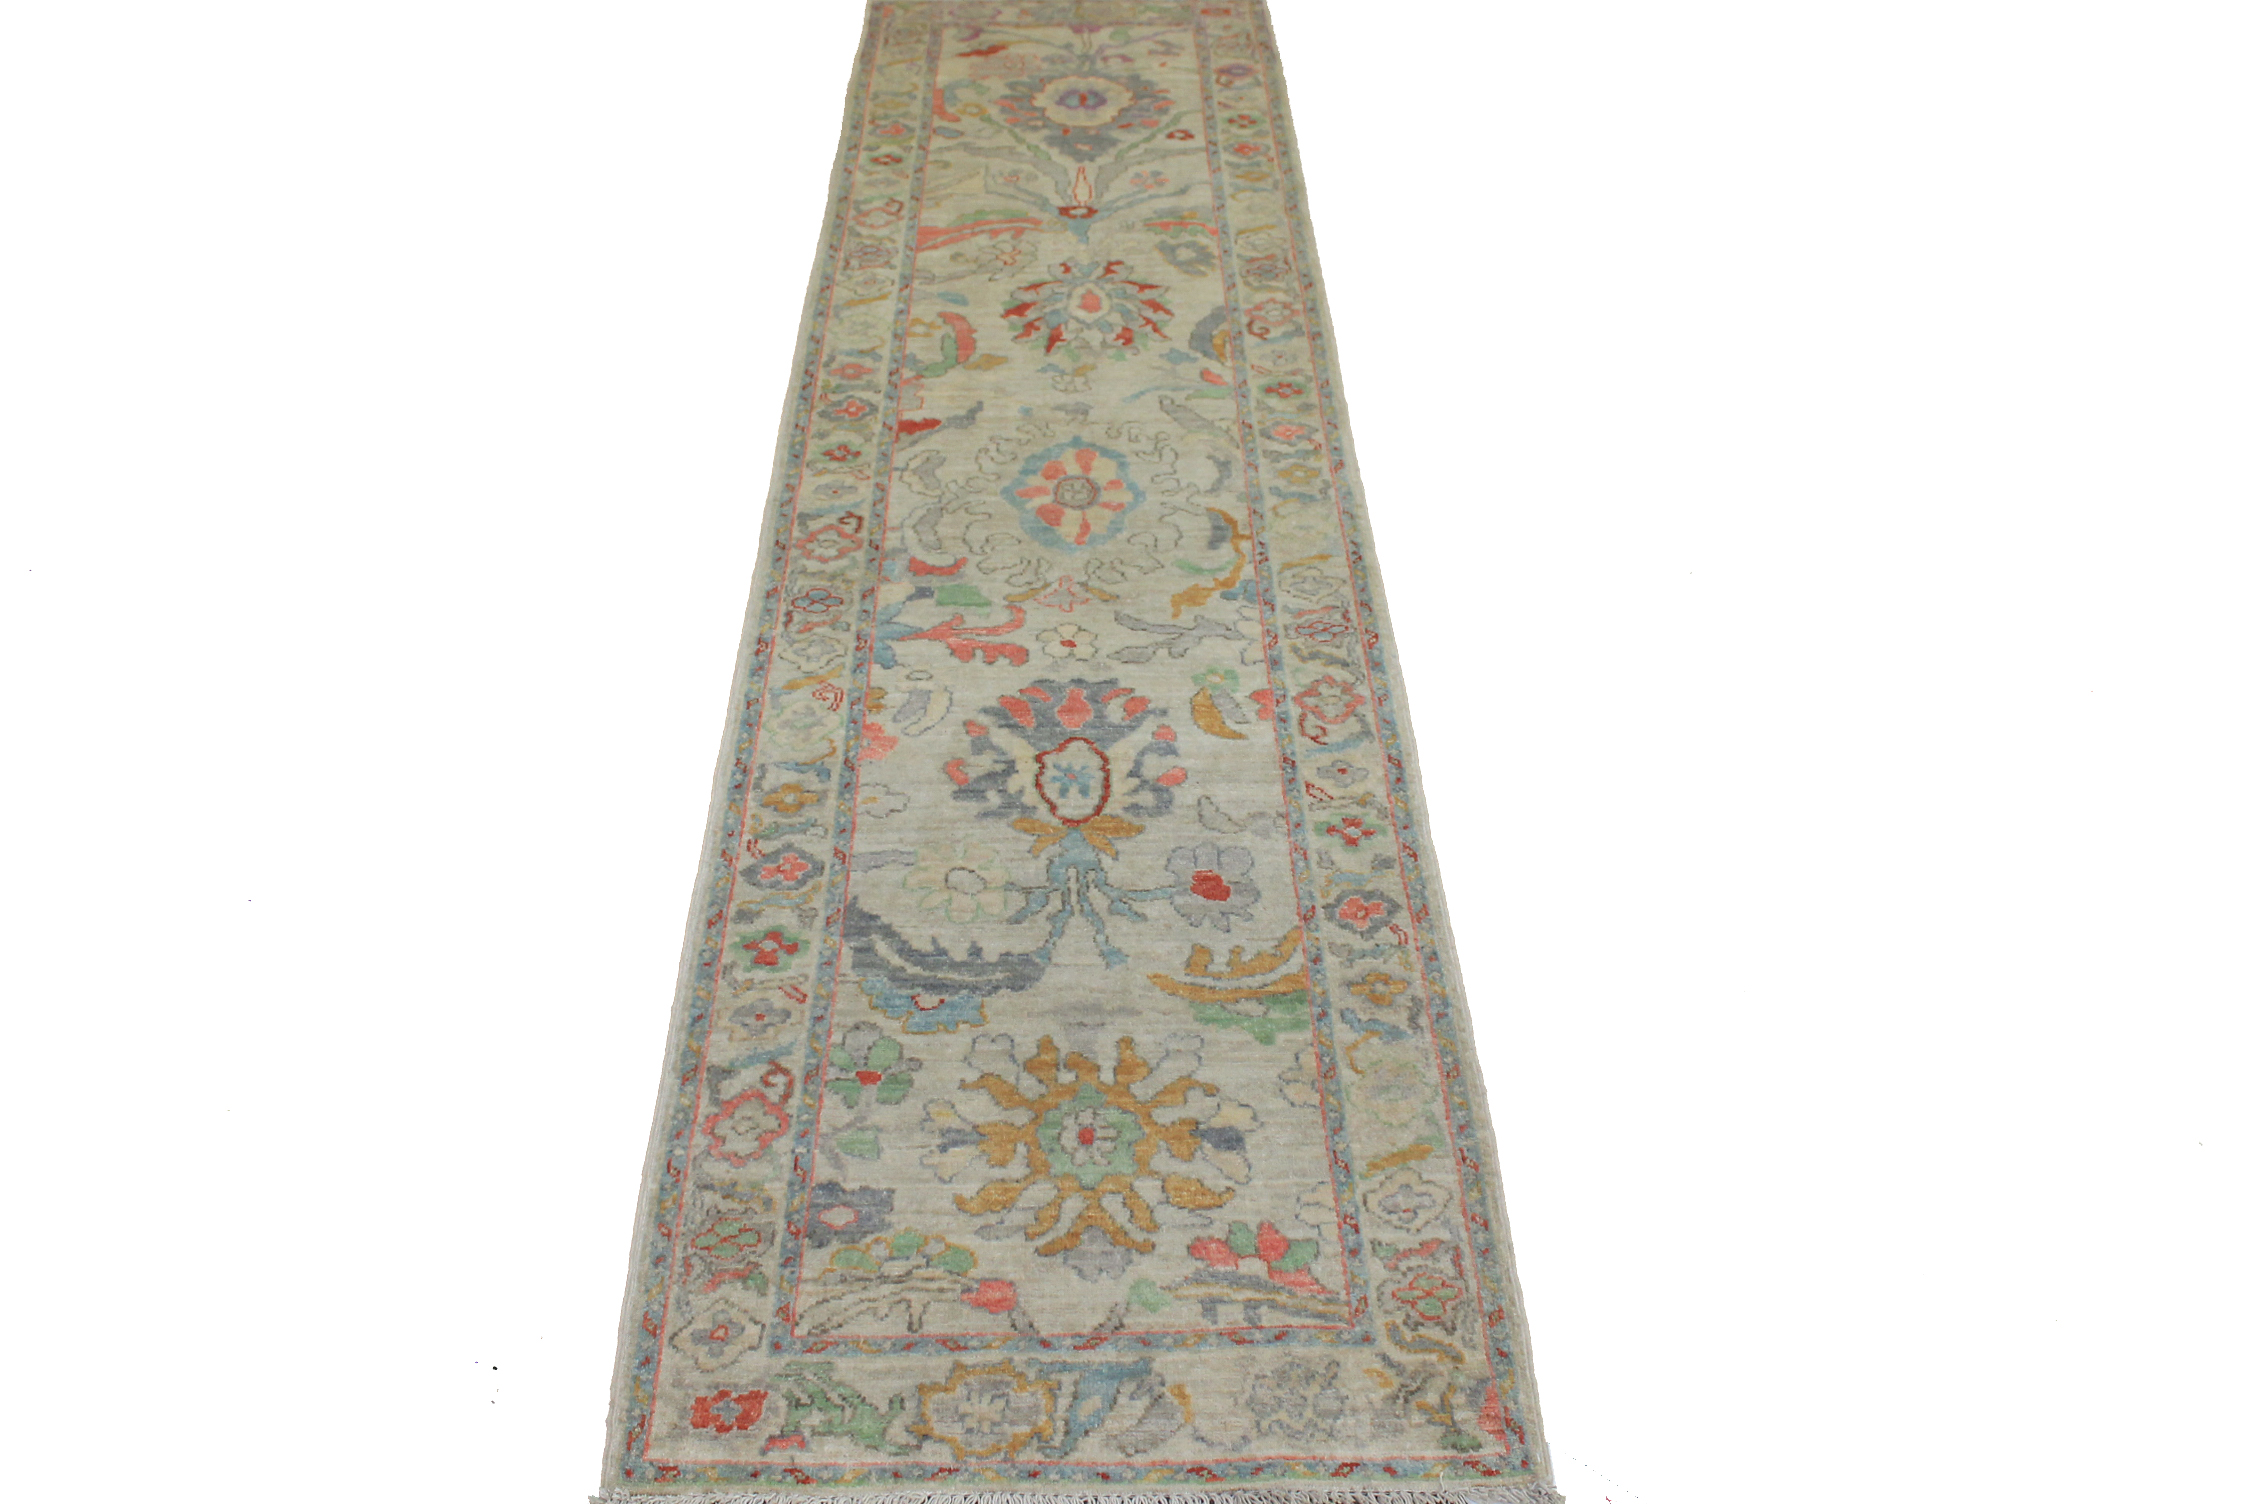 10 ft. Runner Oushak Hand Knotted Wool Area Rug - MR024362